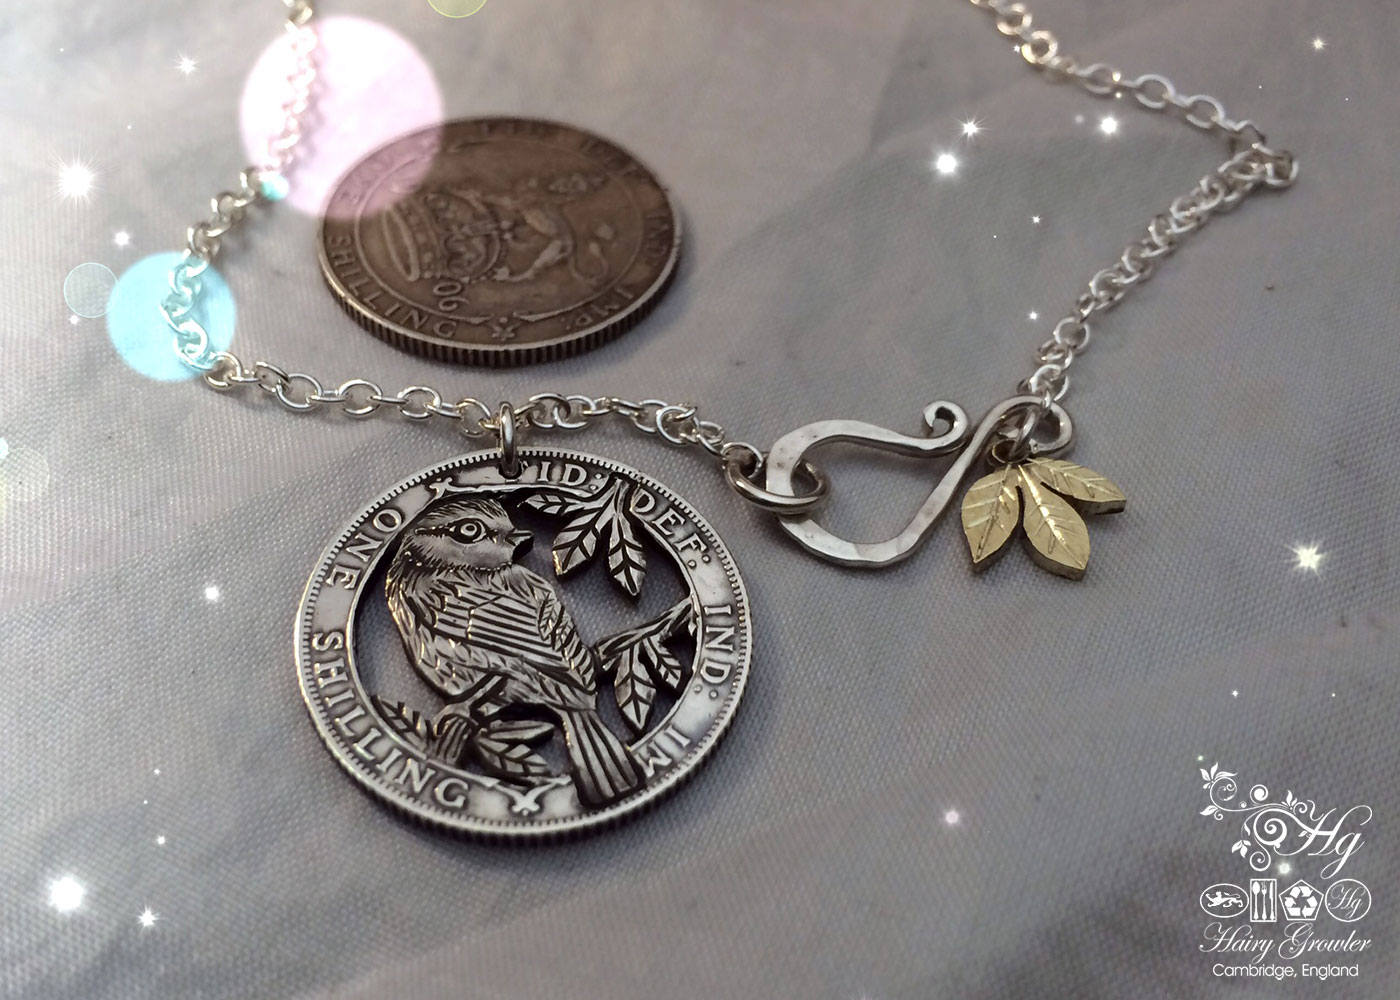 Hand made and repurposed silver shilling The Silver Shilling collection. silver blue-tit necklace totally handcrafted and recycled from old sterling silver shilling coins. Designed and created by Hairy Growler Jewellery, Cambridge, UK. necklace